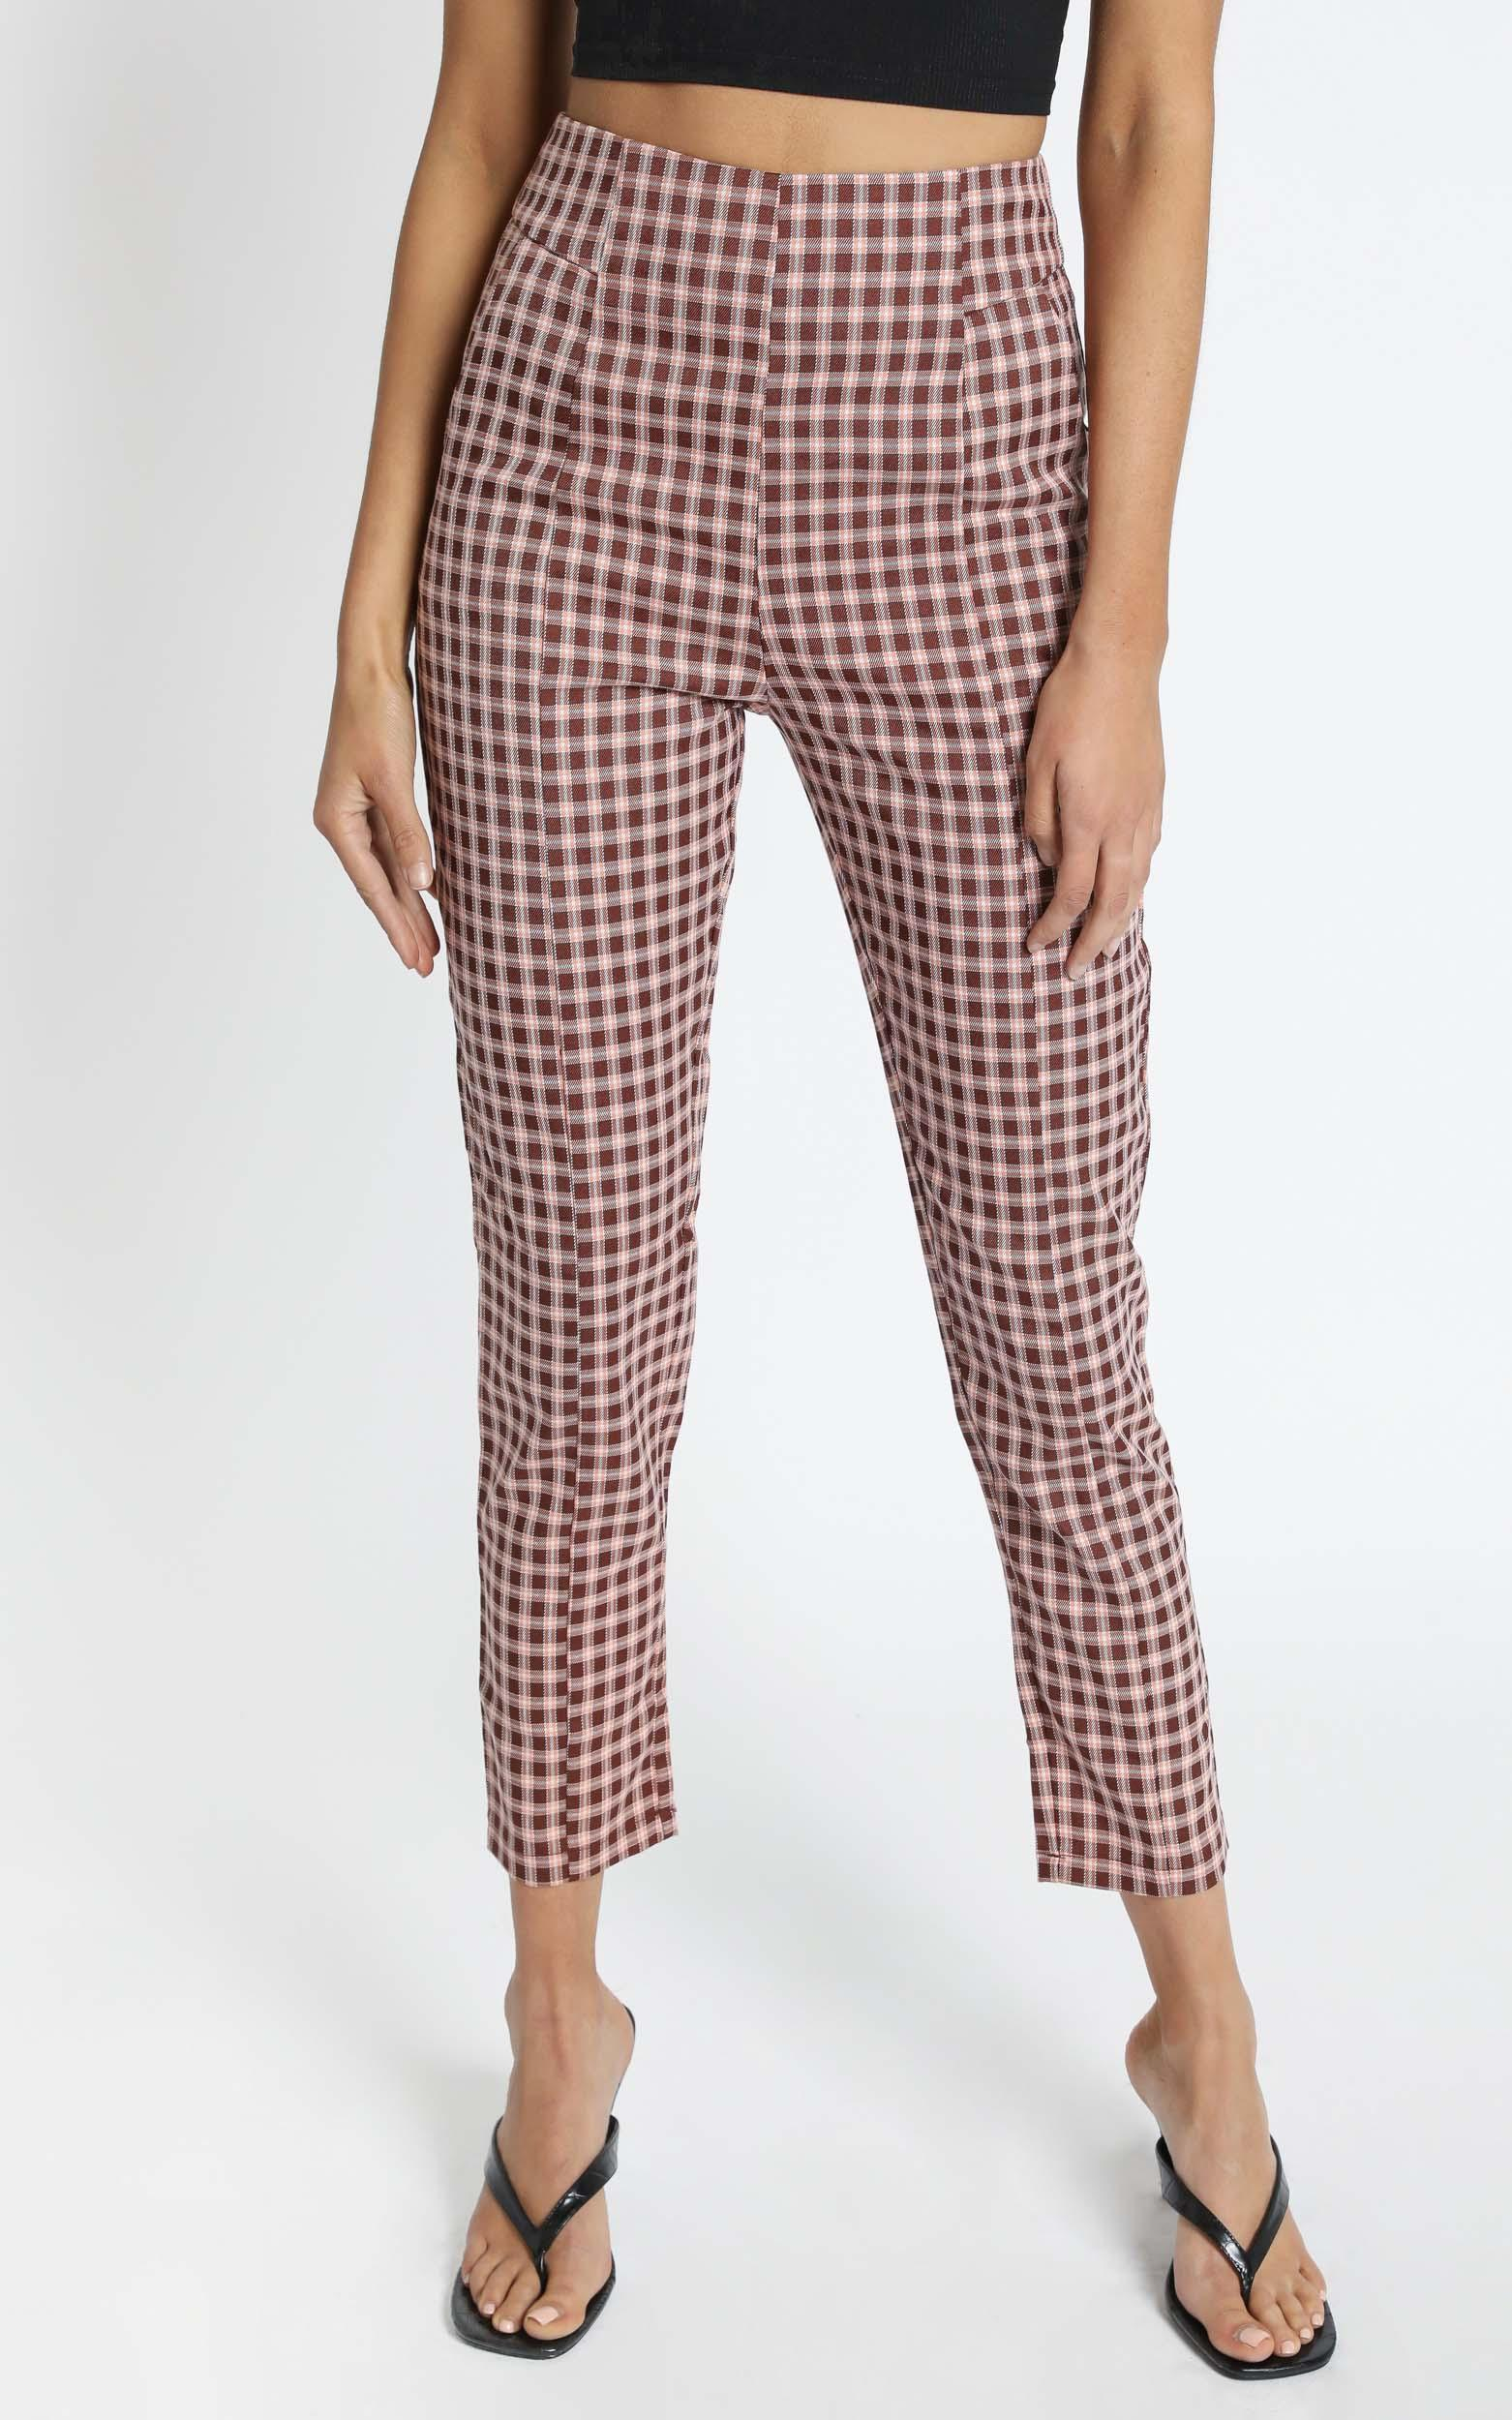 Otis Pants in Red Check - 12 (L), RED1, hi-res image number null